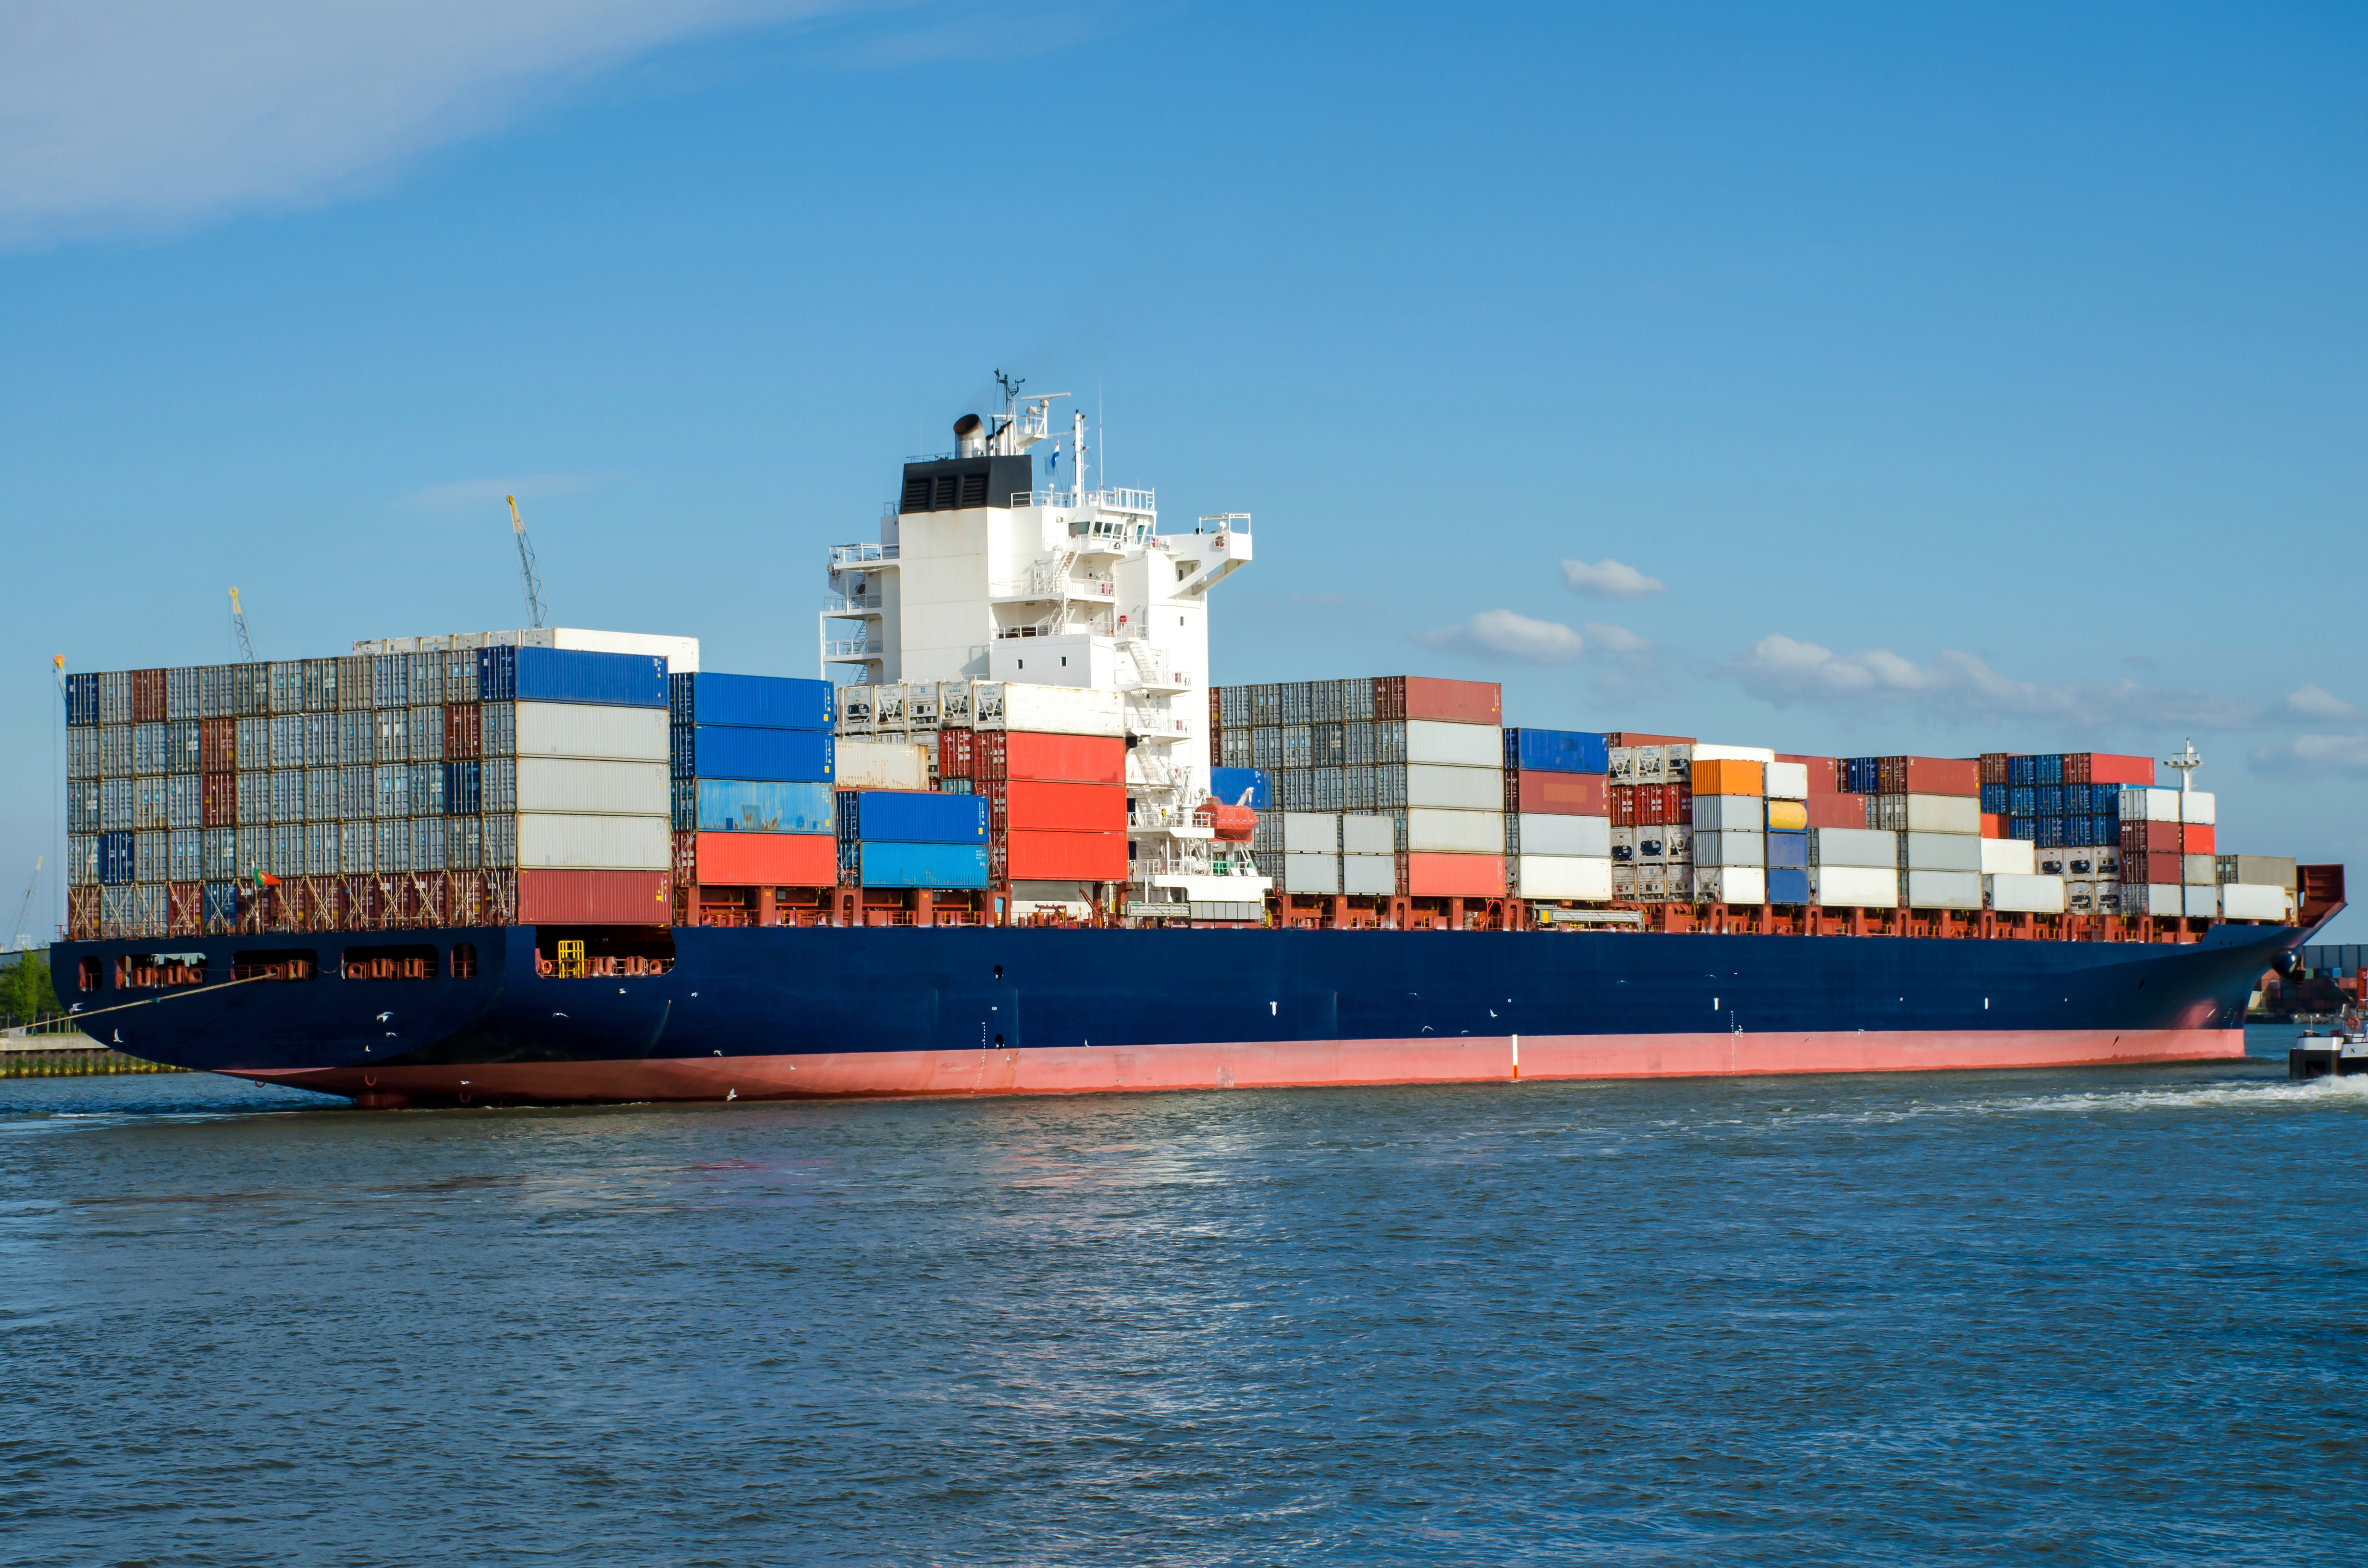 Container-ship-in-the-port-of-Rotterdam-Holland-000065033621_Full